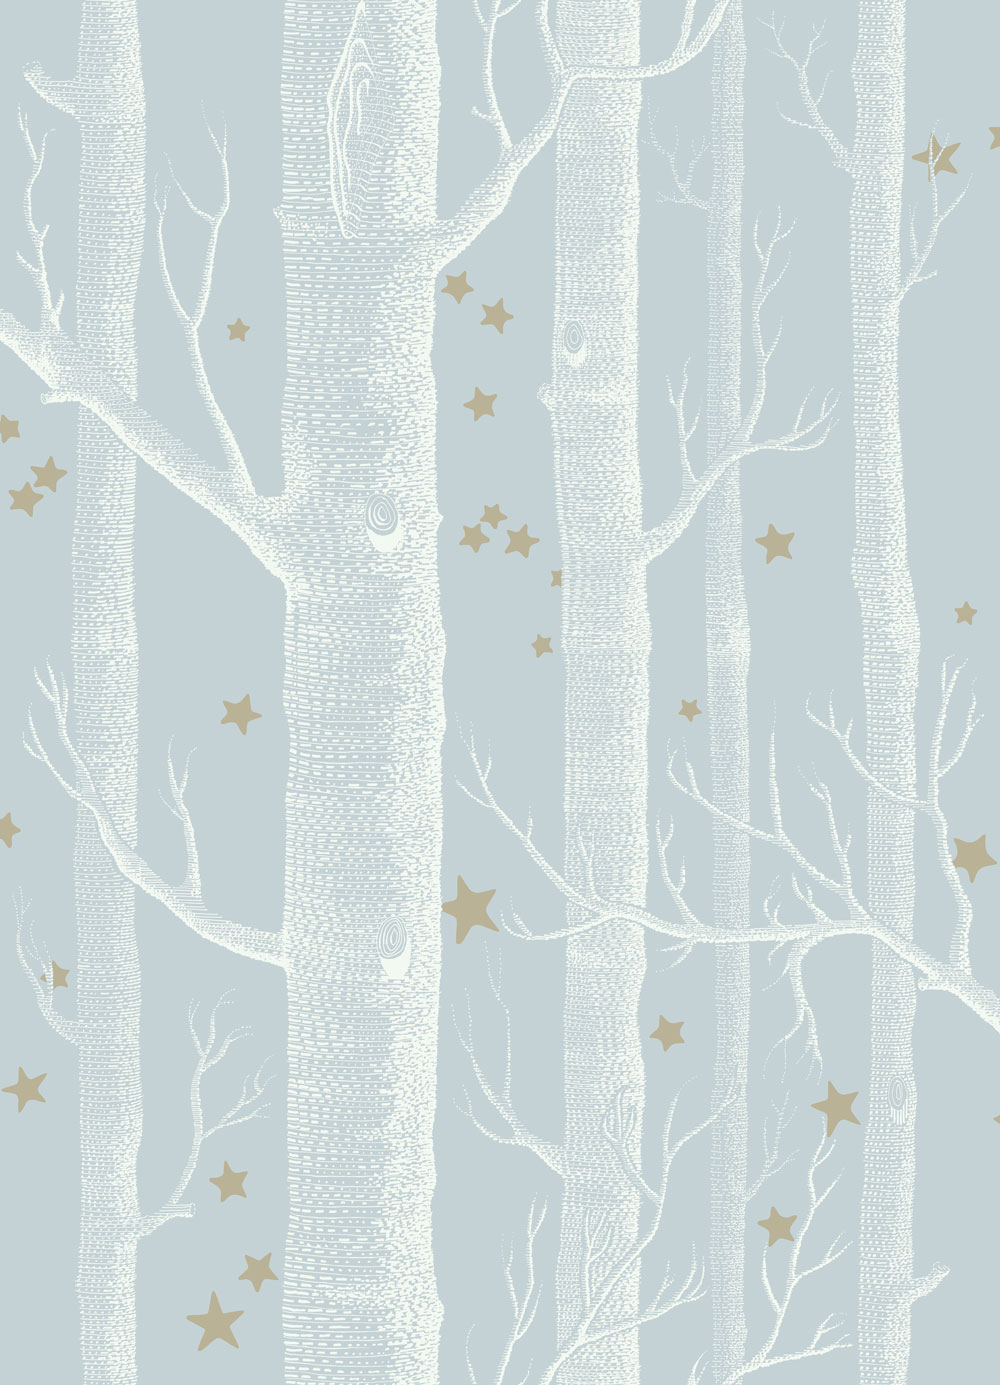 Woods and Stars by Cole & Son - Powder Blue : Wallpaper Direct